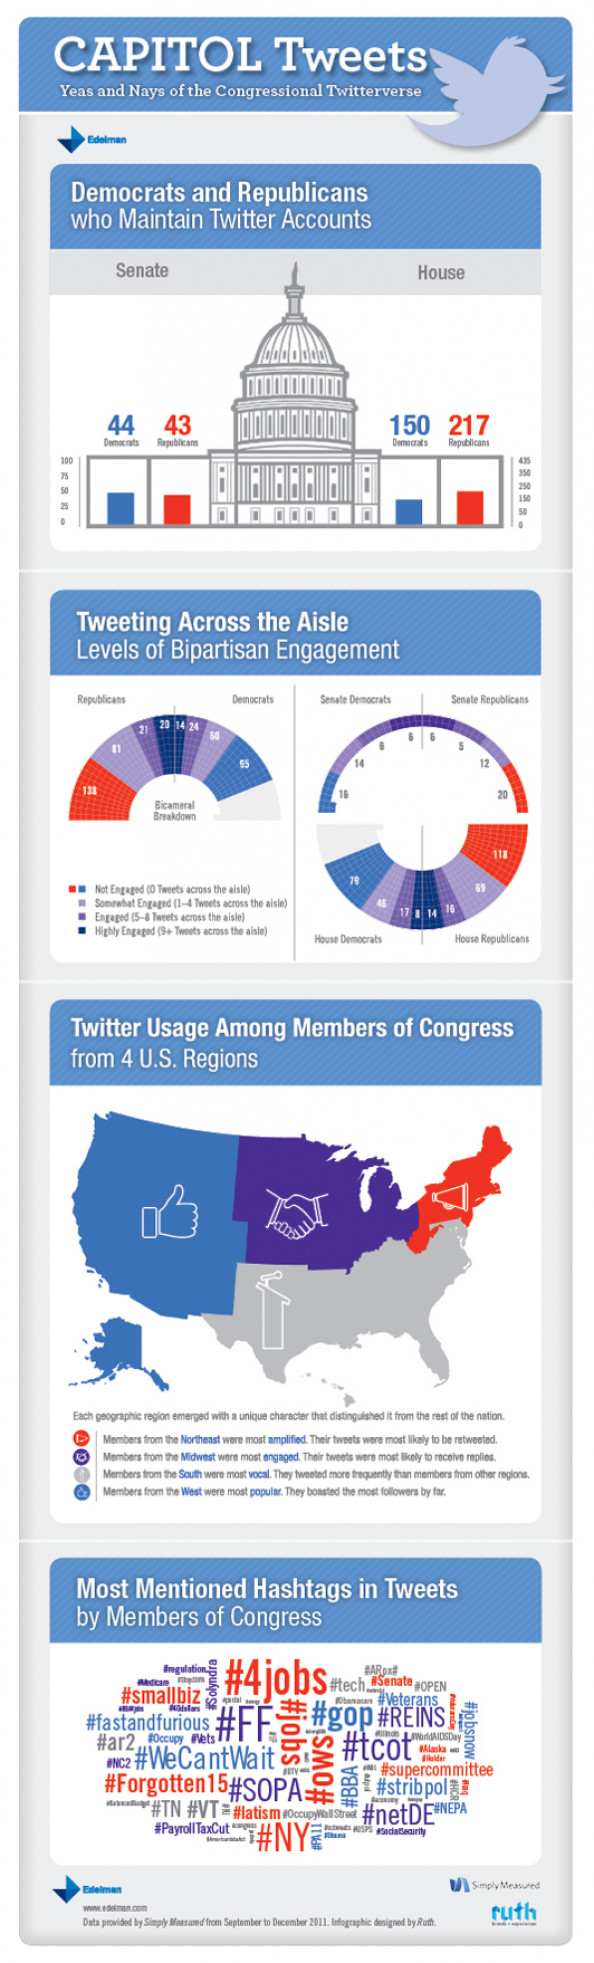 Capitol Tweets: Yeas and Nays of the Congressional Twitterverse Infographic